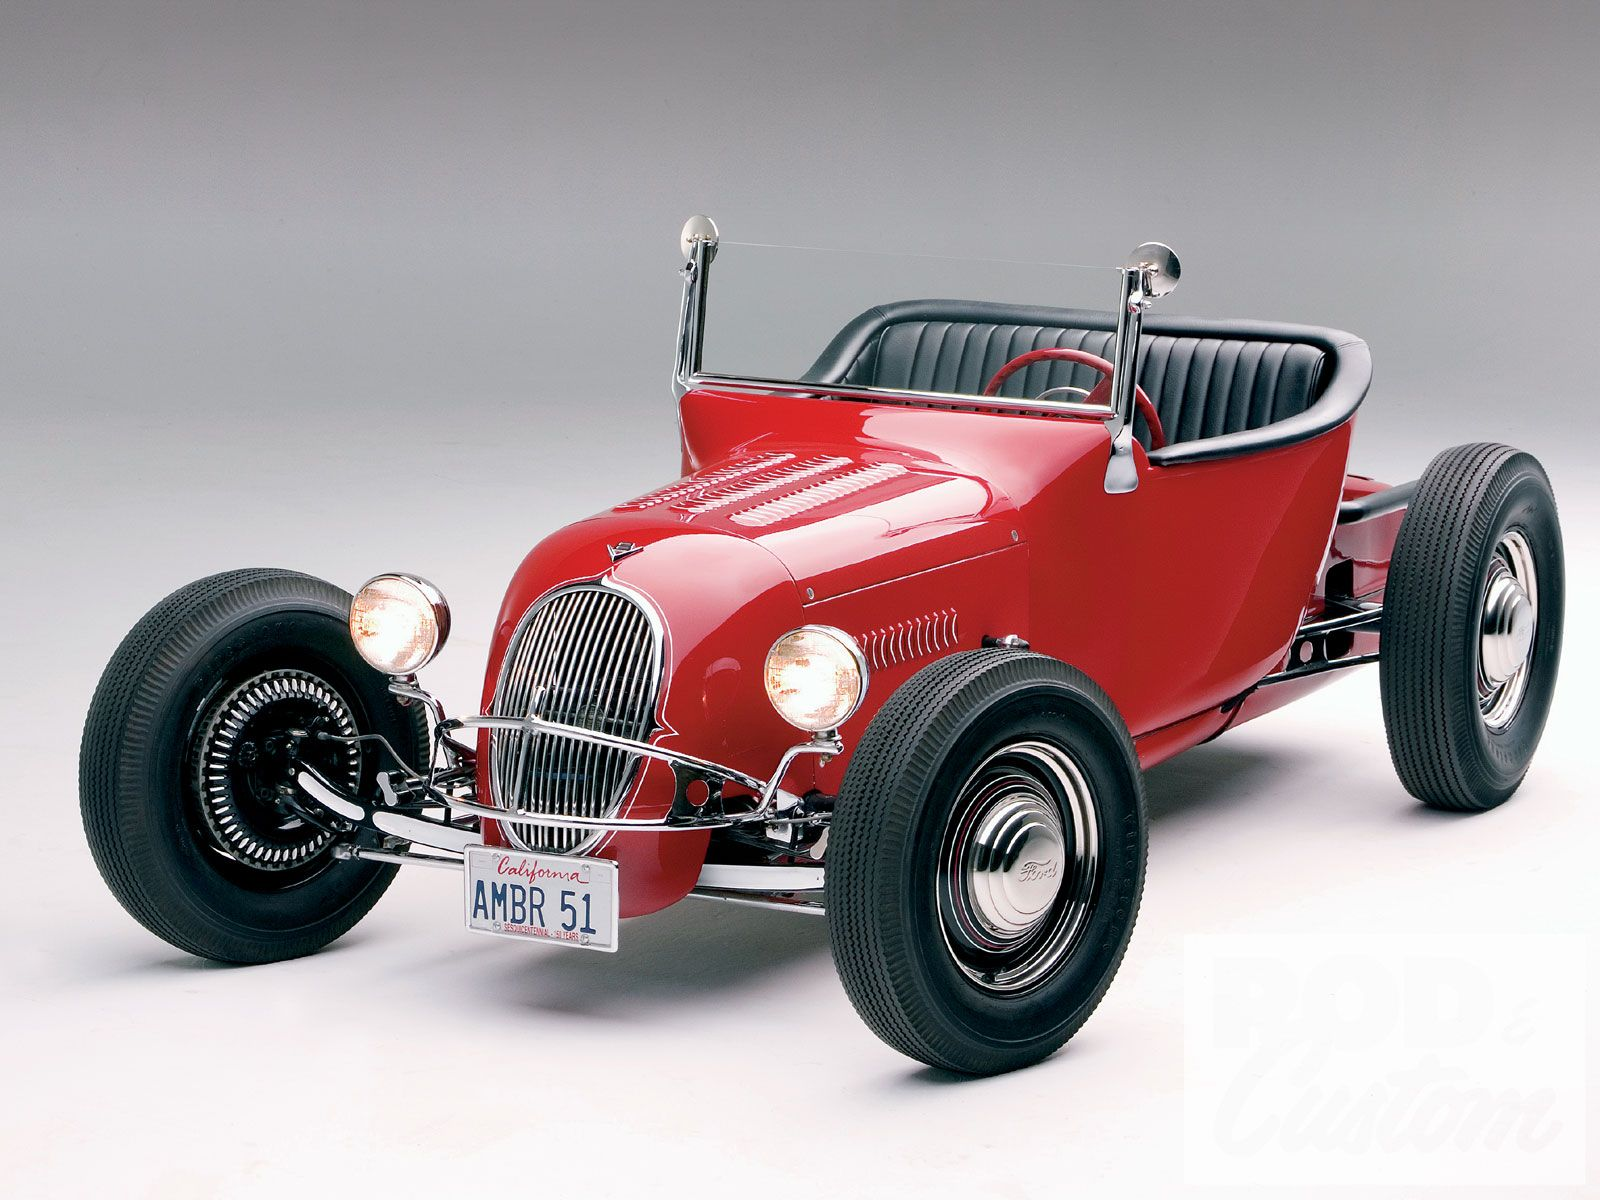 1005rc_02_o+1923_ford_model_t_roadster+matador_red_model_t.jpg 1 600 × 1 200 pixels